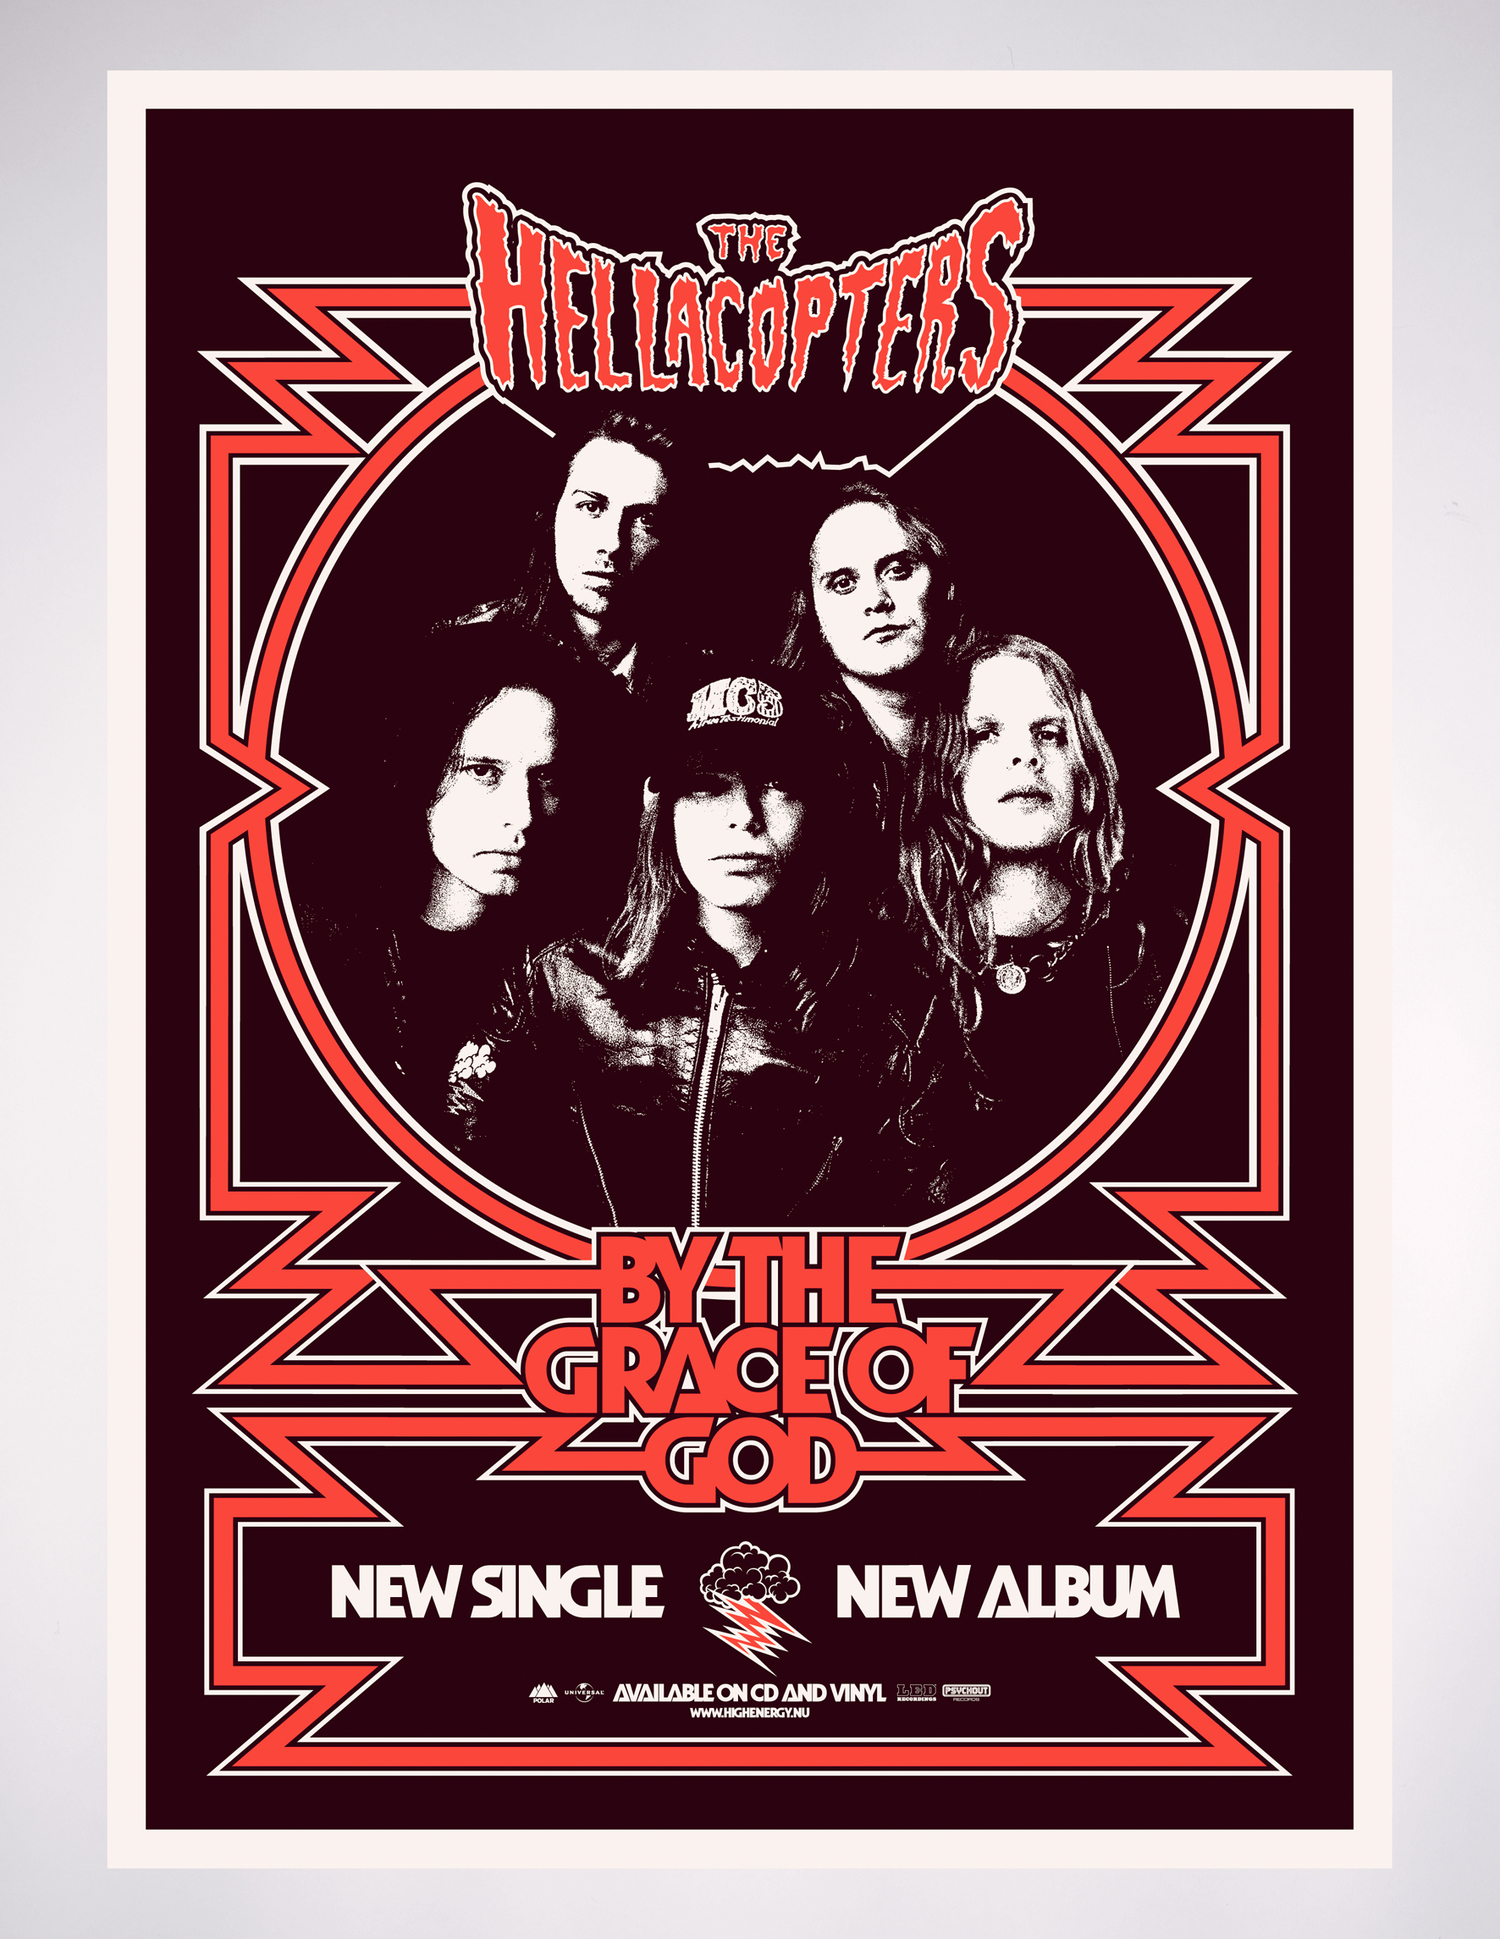 The Hellacopters By The Grace Of God Walse